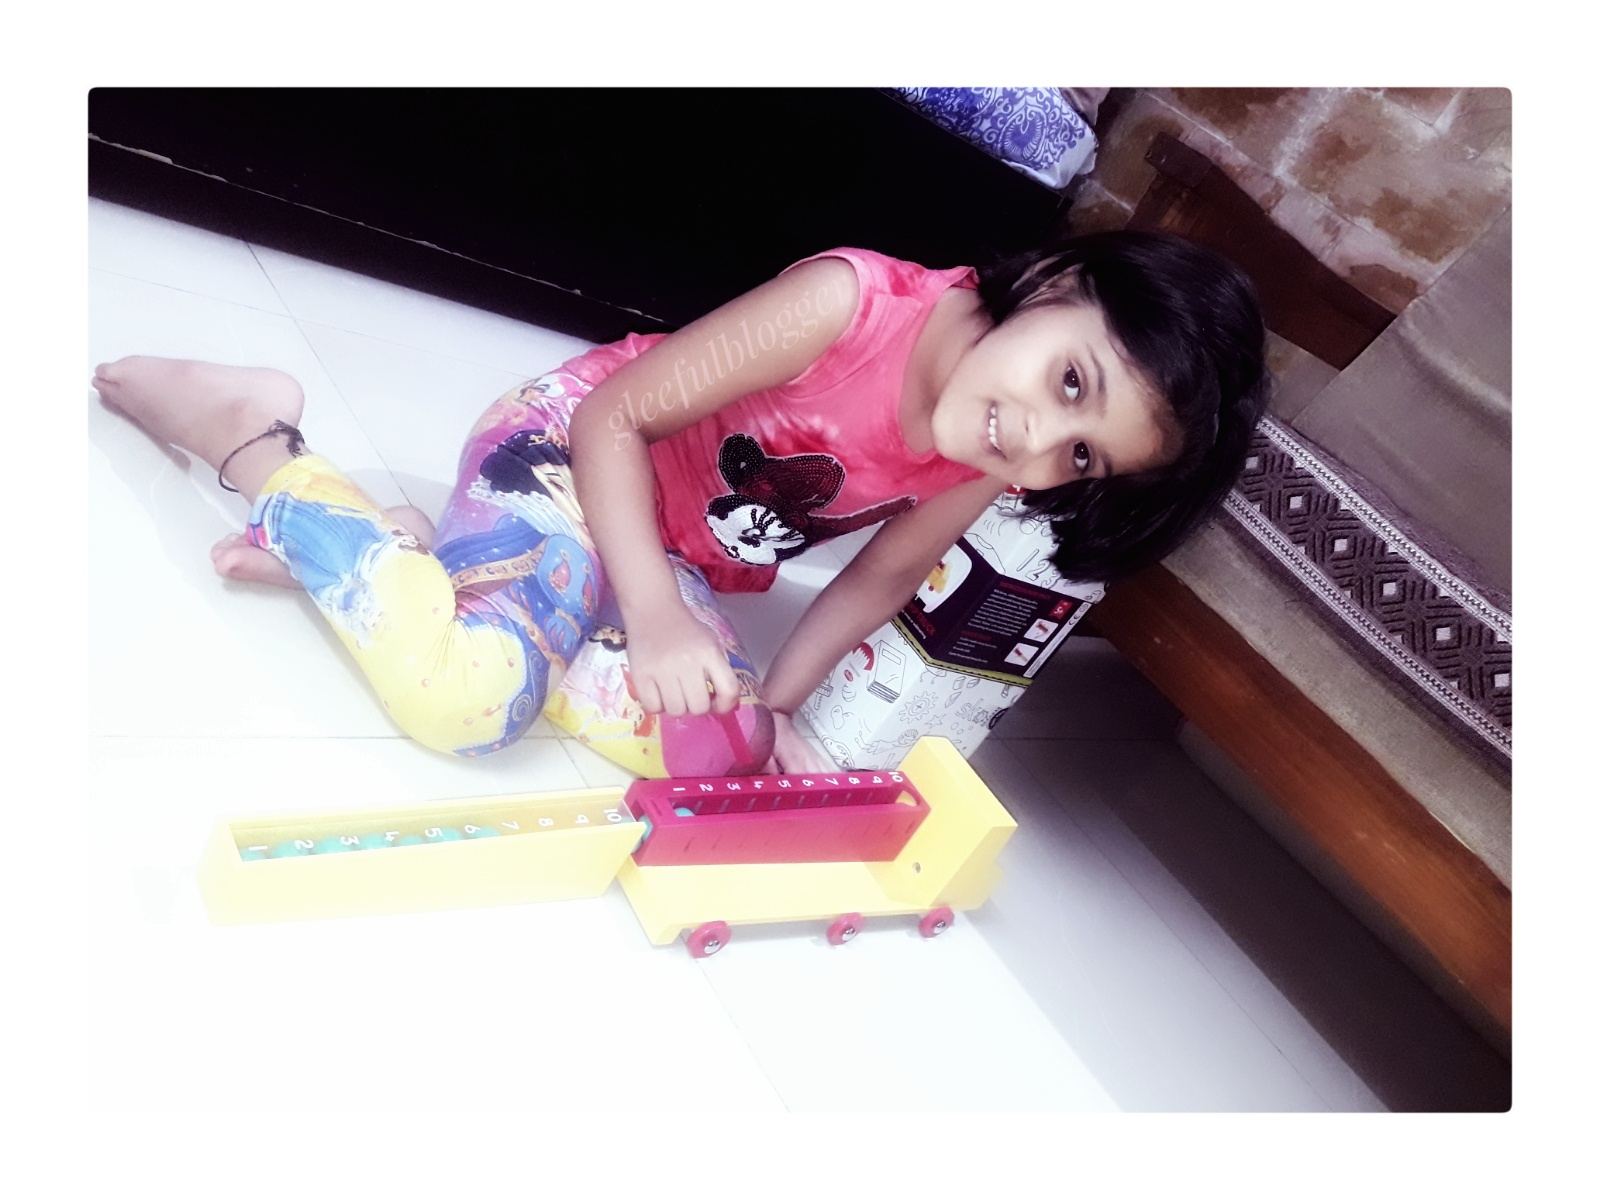 Educational Toys enhance learning & problem-solving ability in Children